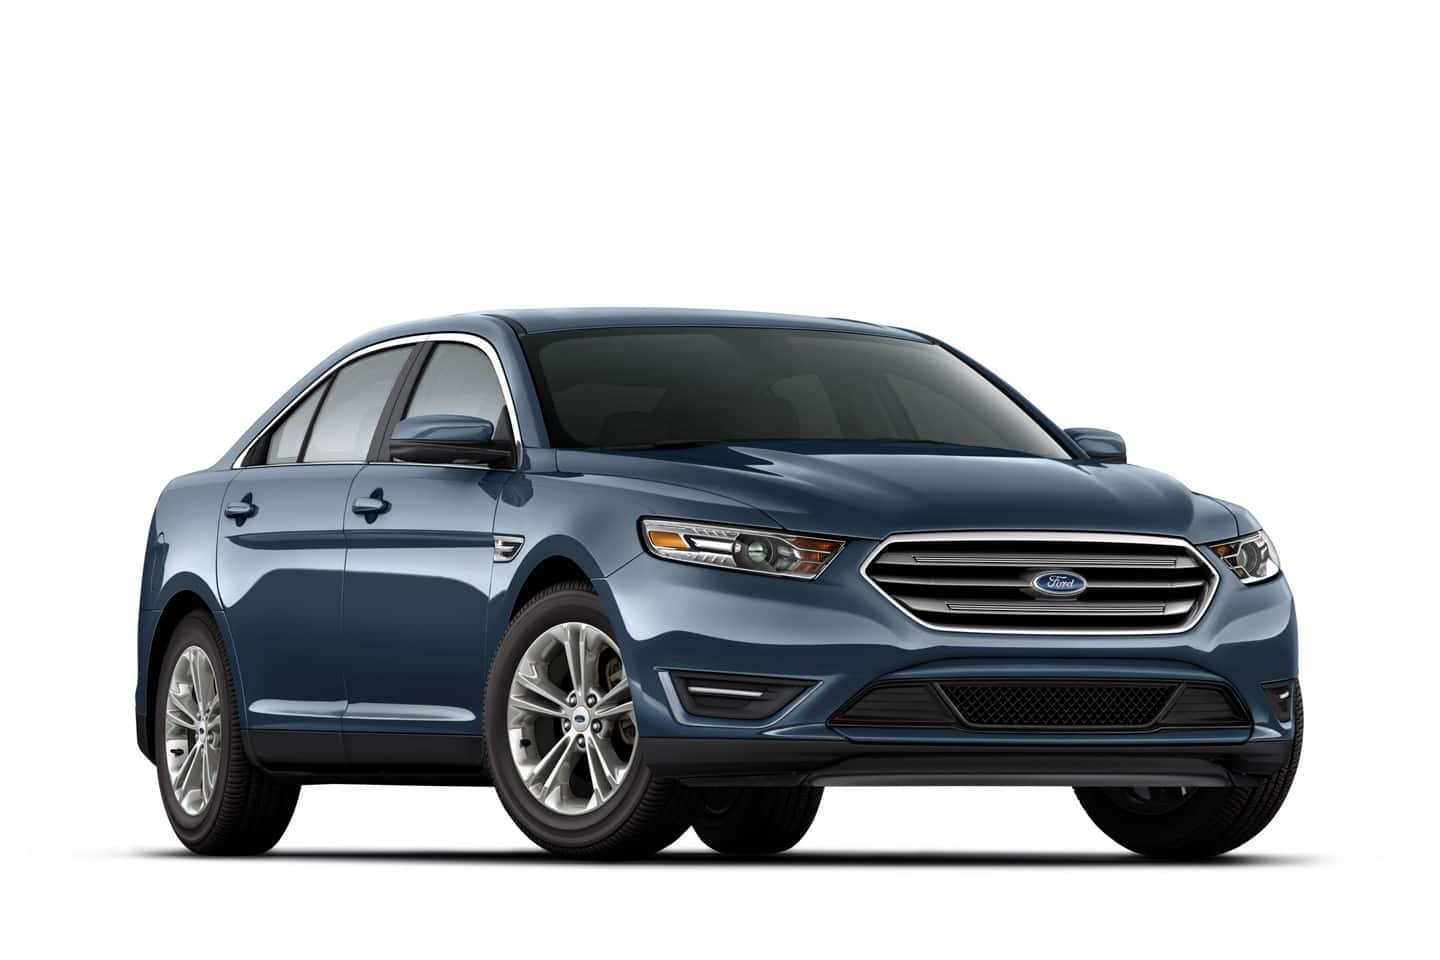 63 The Best 2019 Ford Taurus Price